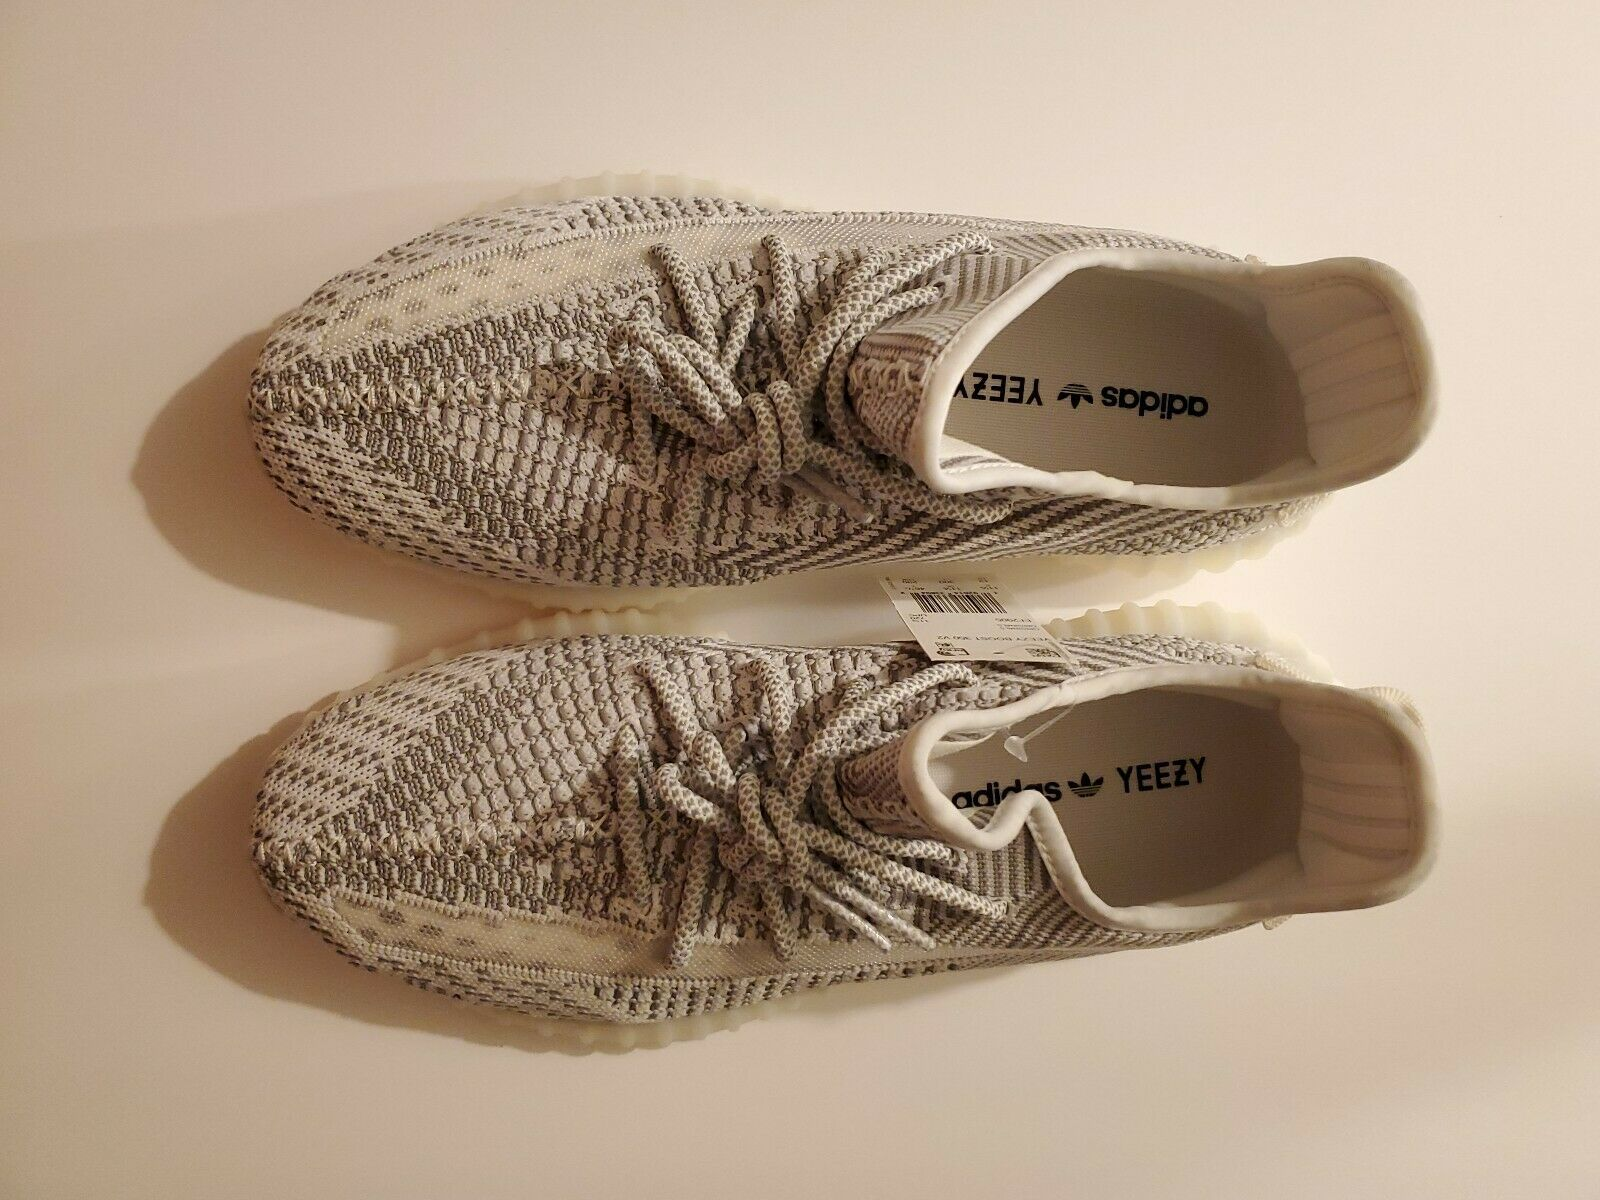 Adidas Yeezy Boost 350 V2 Static EF2905 size 12 non reflective 100% authentic image 3